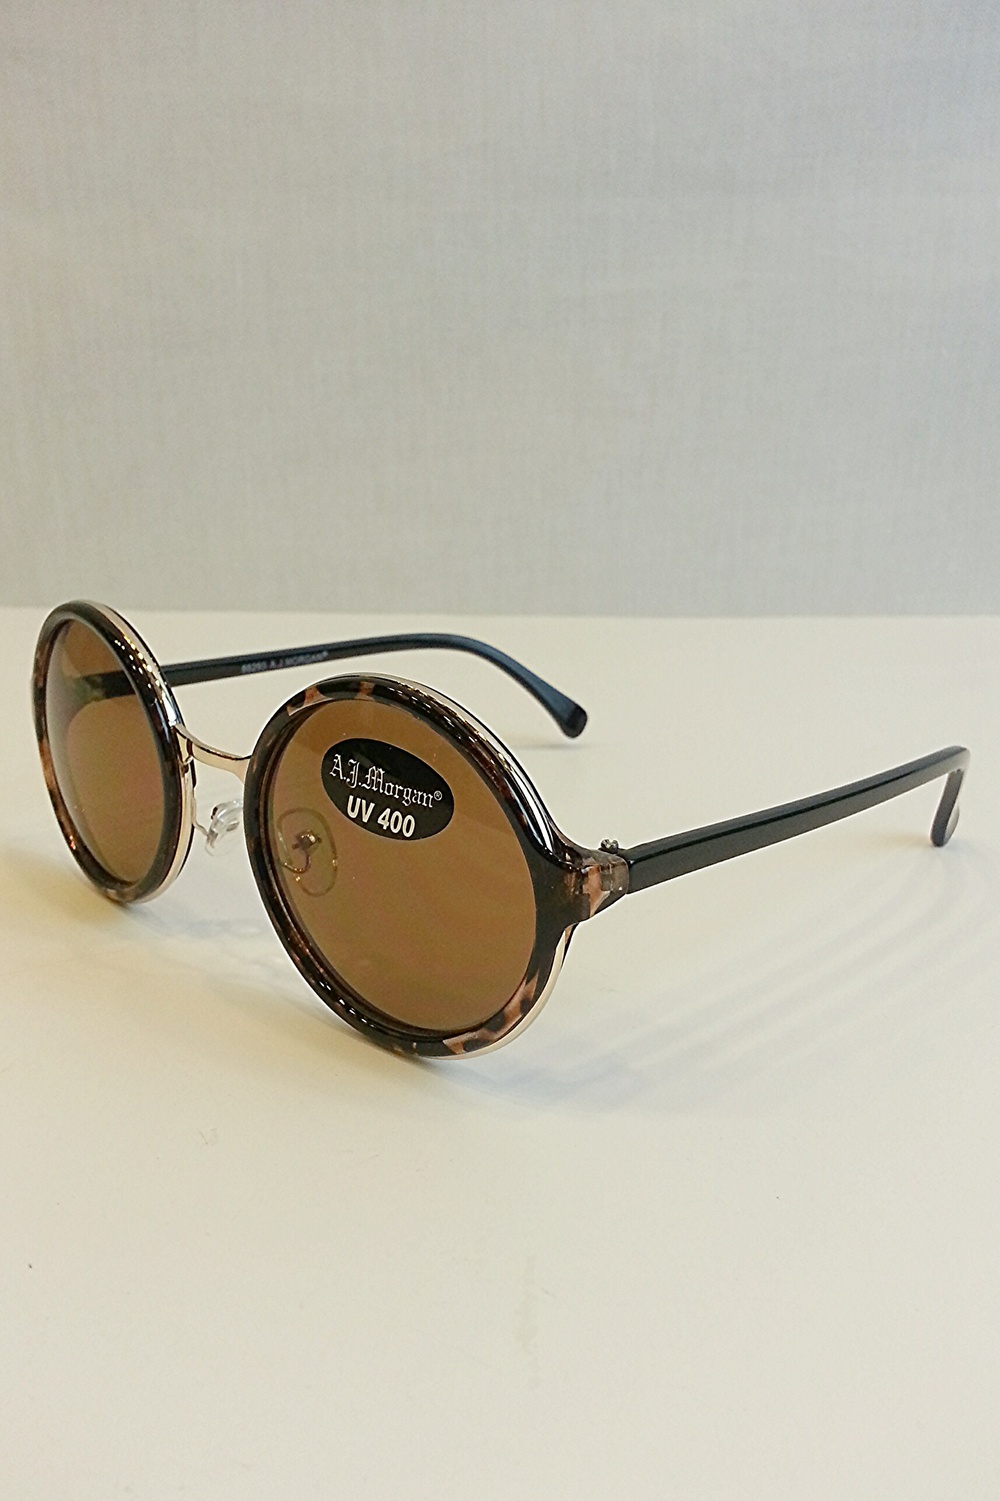 Occasion tortoise round frame sunglasses — simply chic